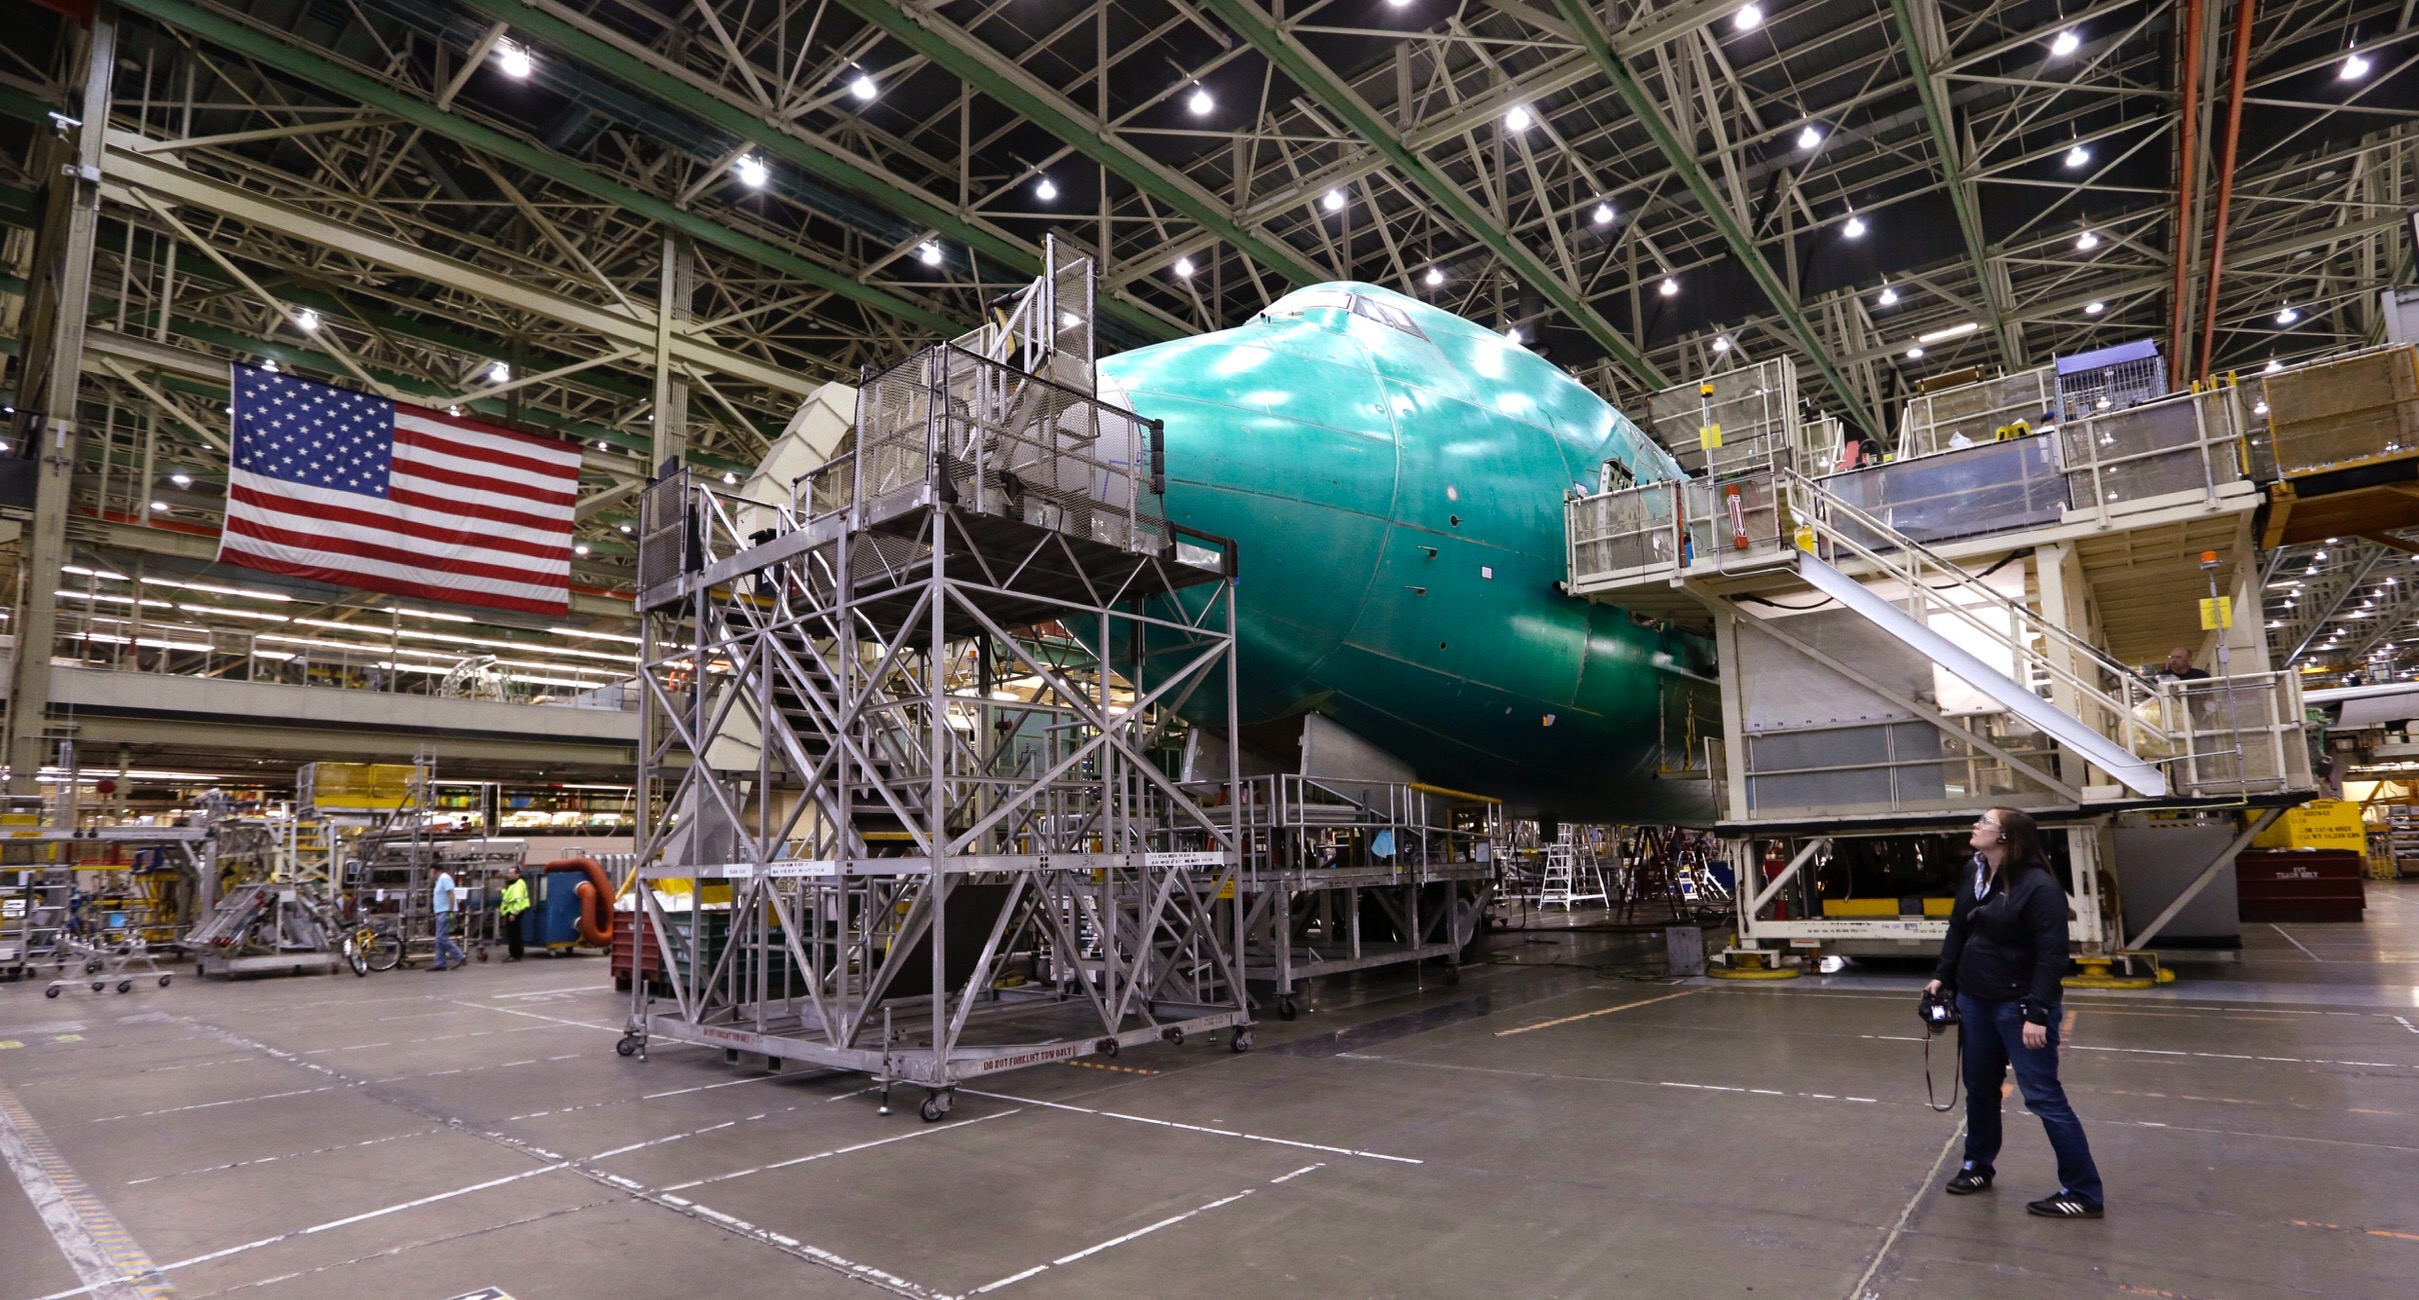 Boeing may end production of its iconic 747 aircraft after nearly 50 years